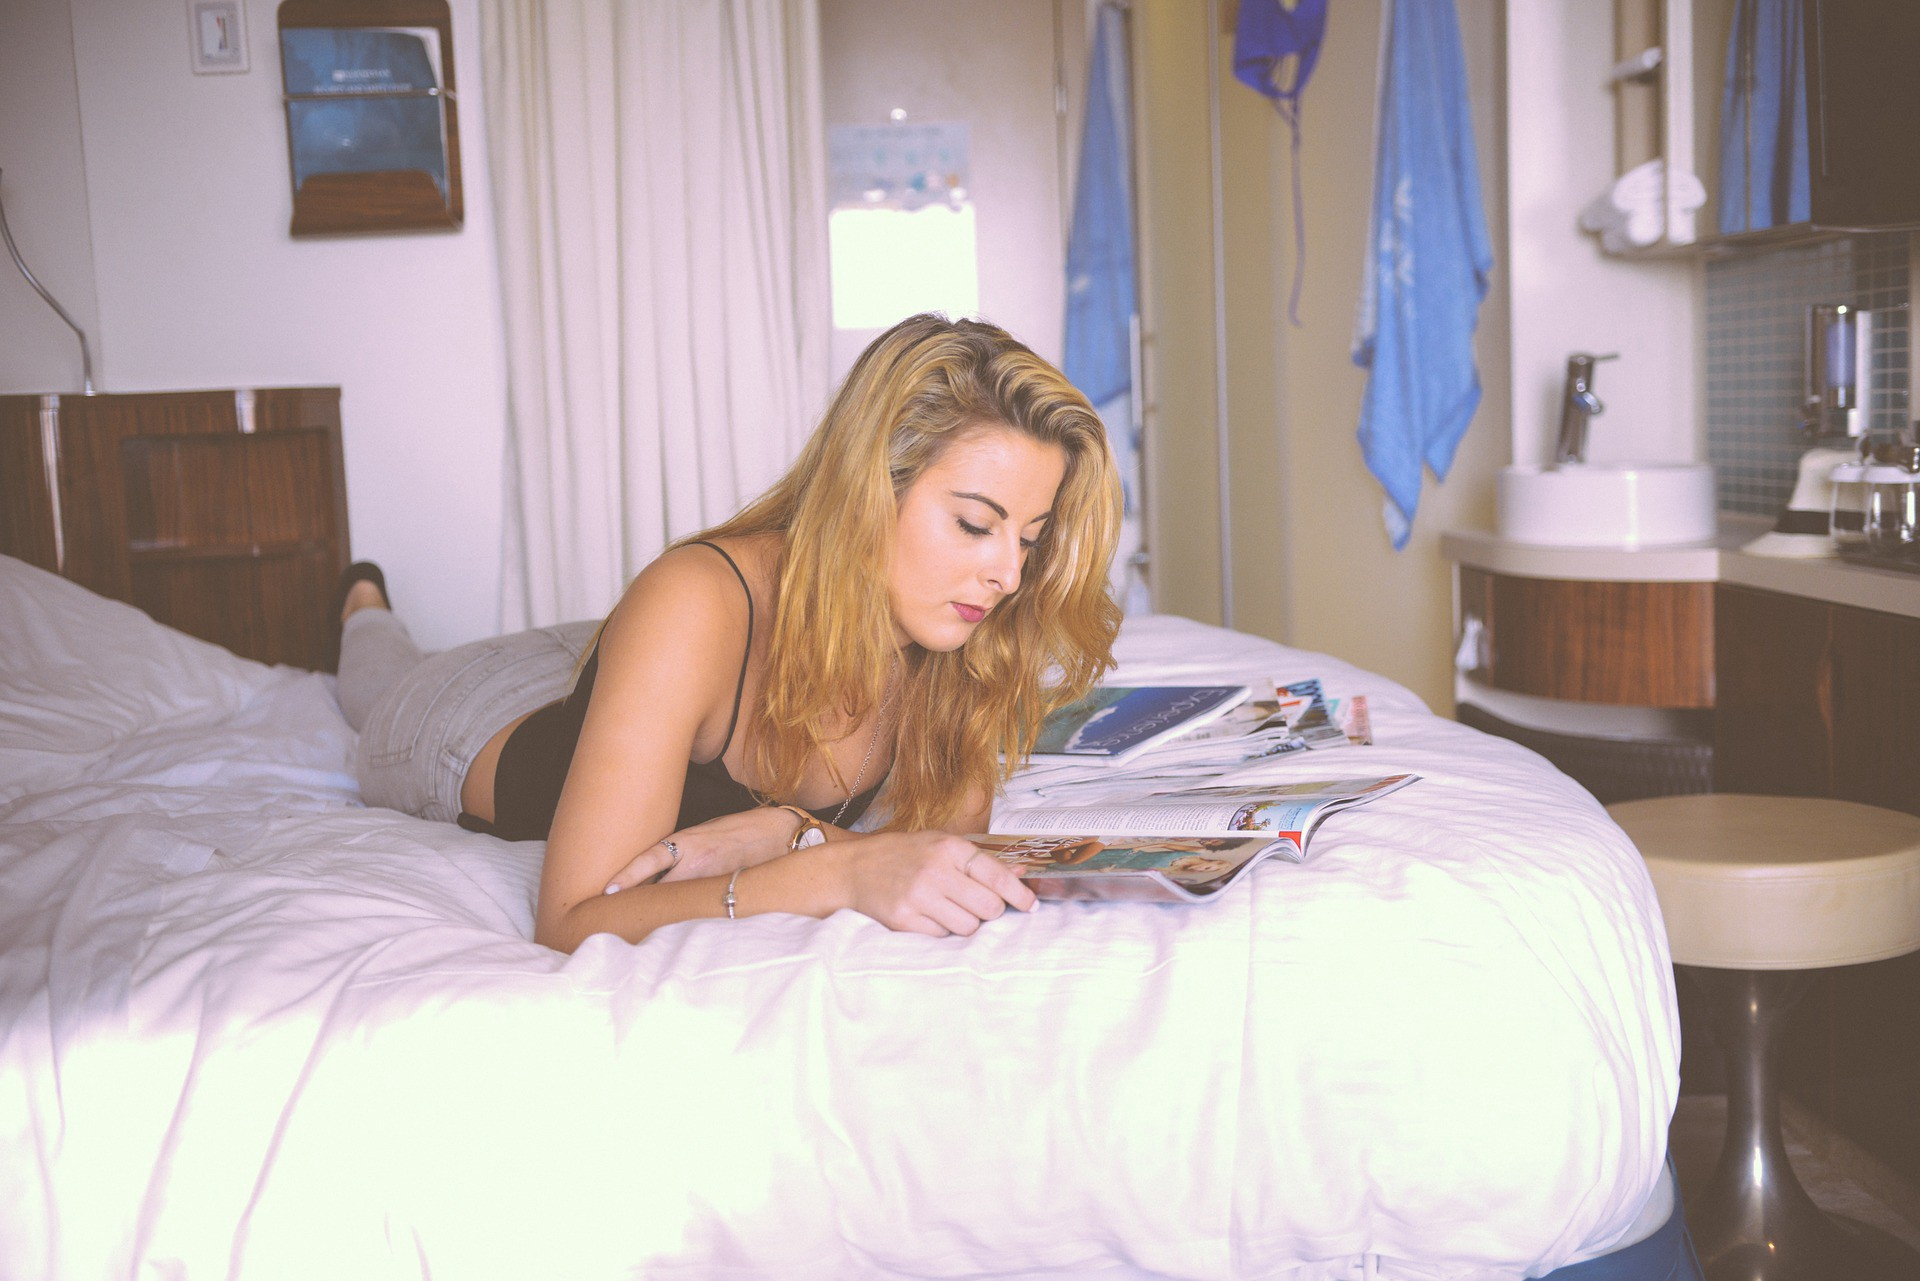 Woman lying on a bed reading a magazine. How to Write About What People Want to Read.